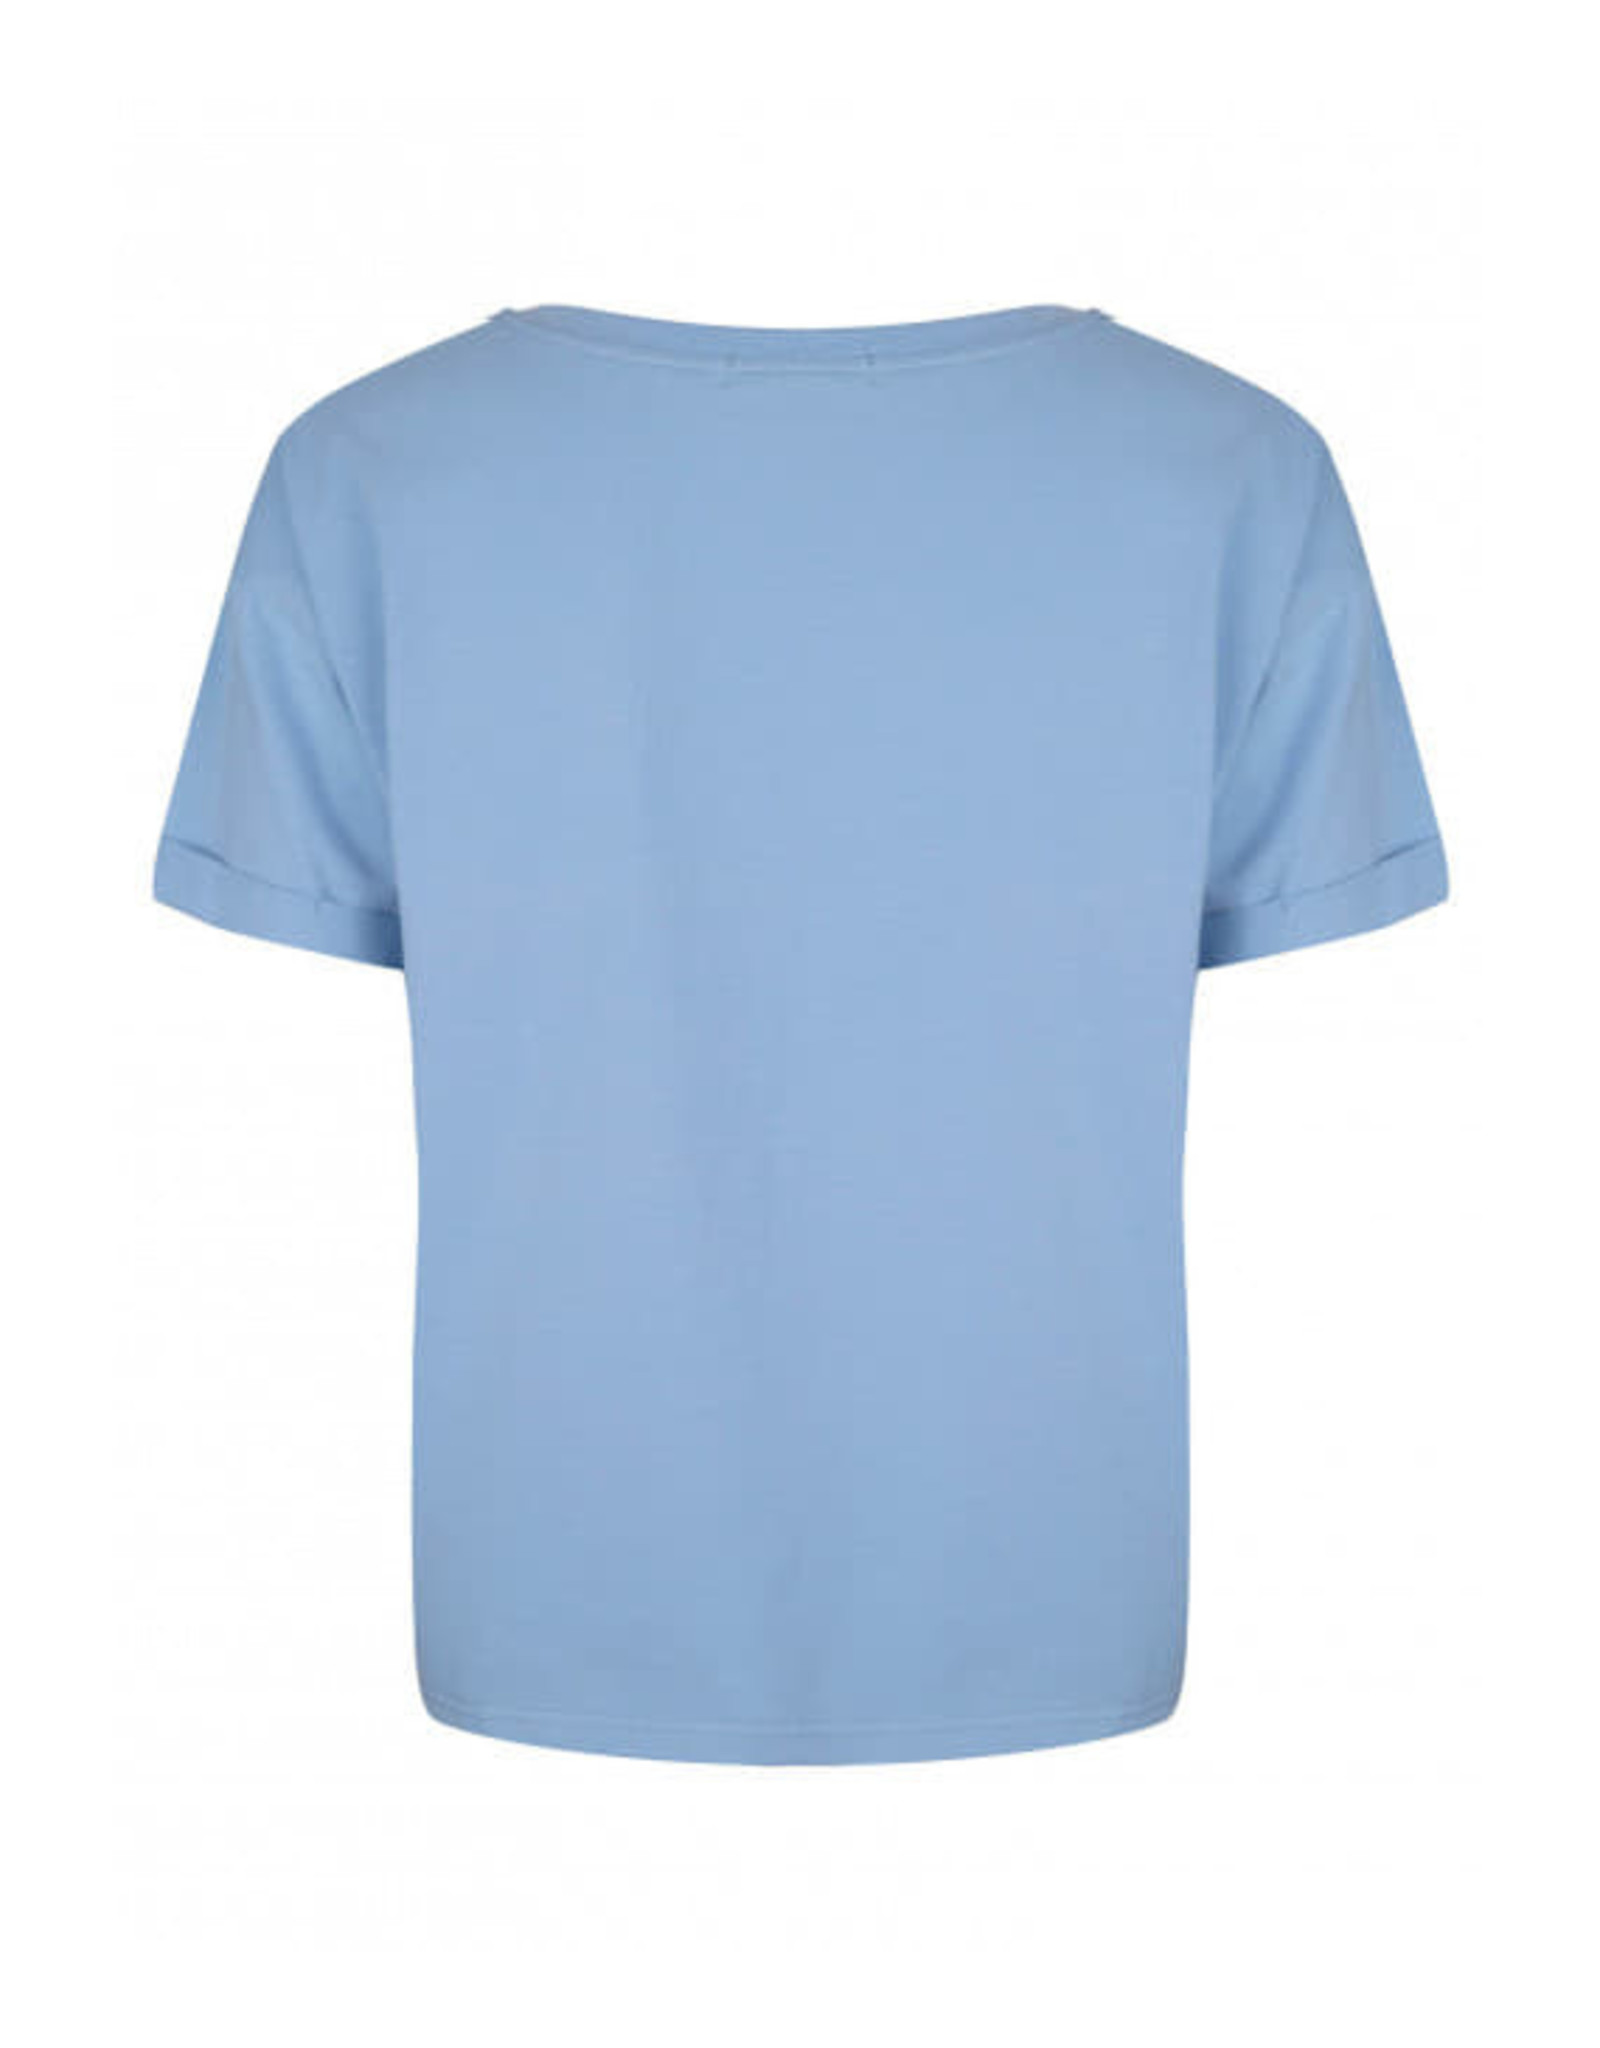 BREE T-SHIRT BLUE